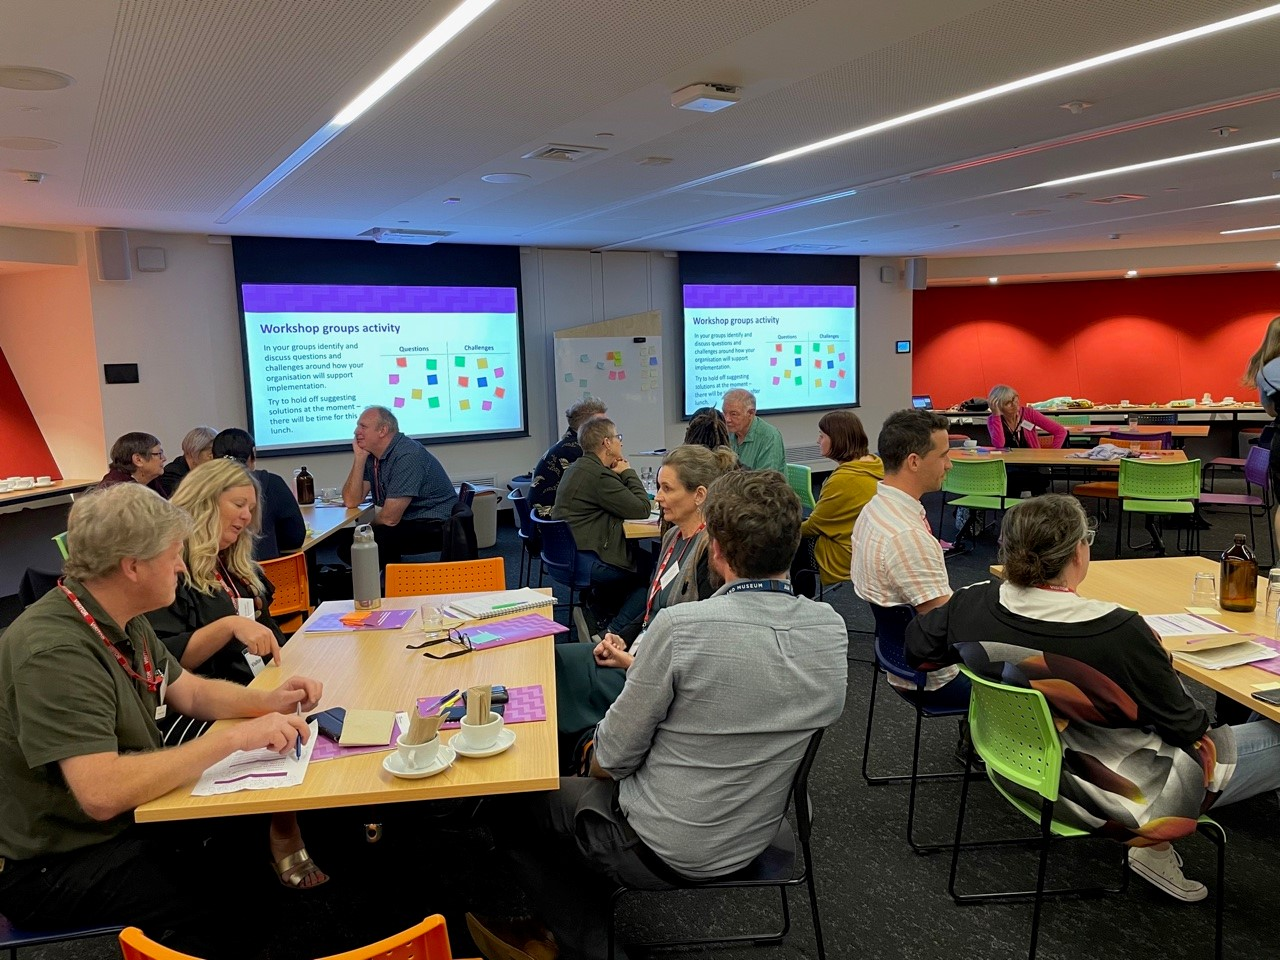 Teachers unpacking and discussing Aotearoa New Zealand's rich history during a professional development workshop.